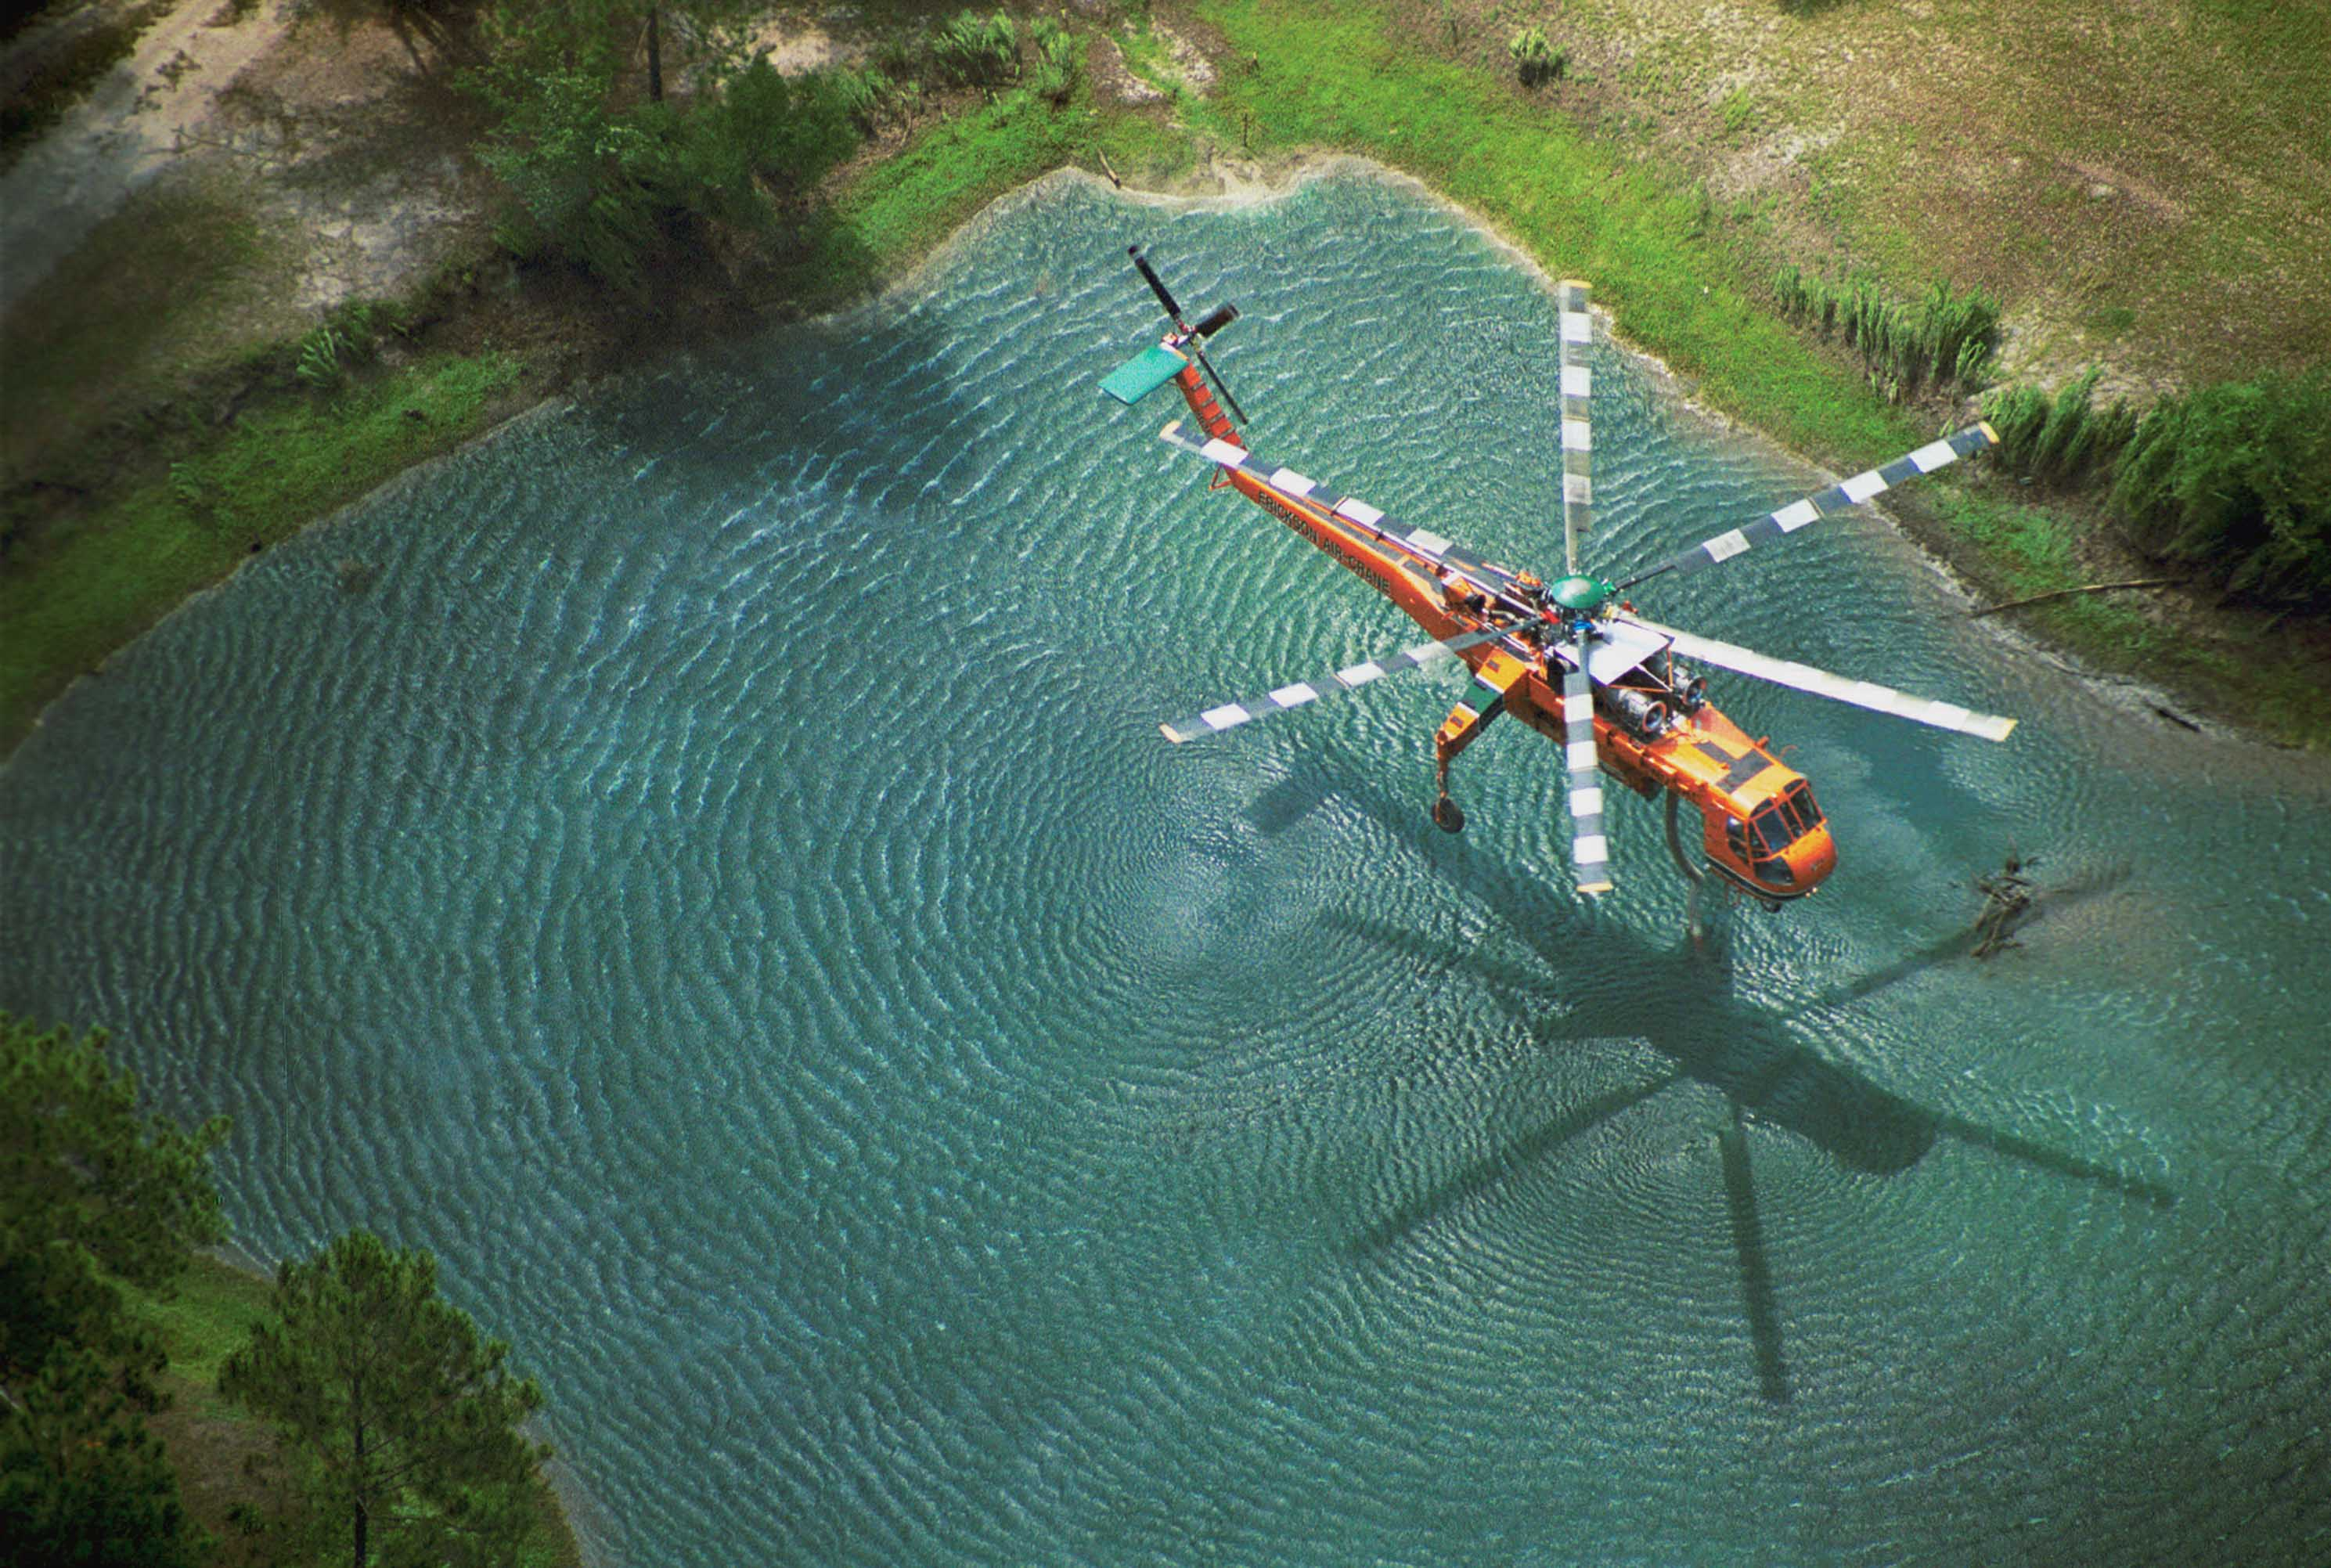 Helicopter getting water